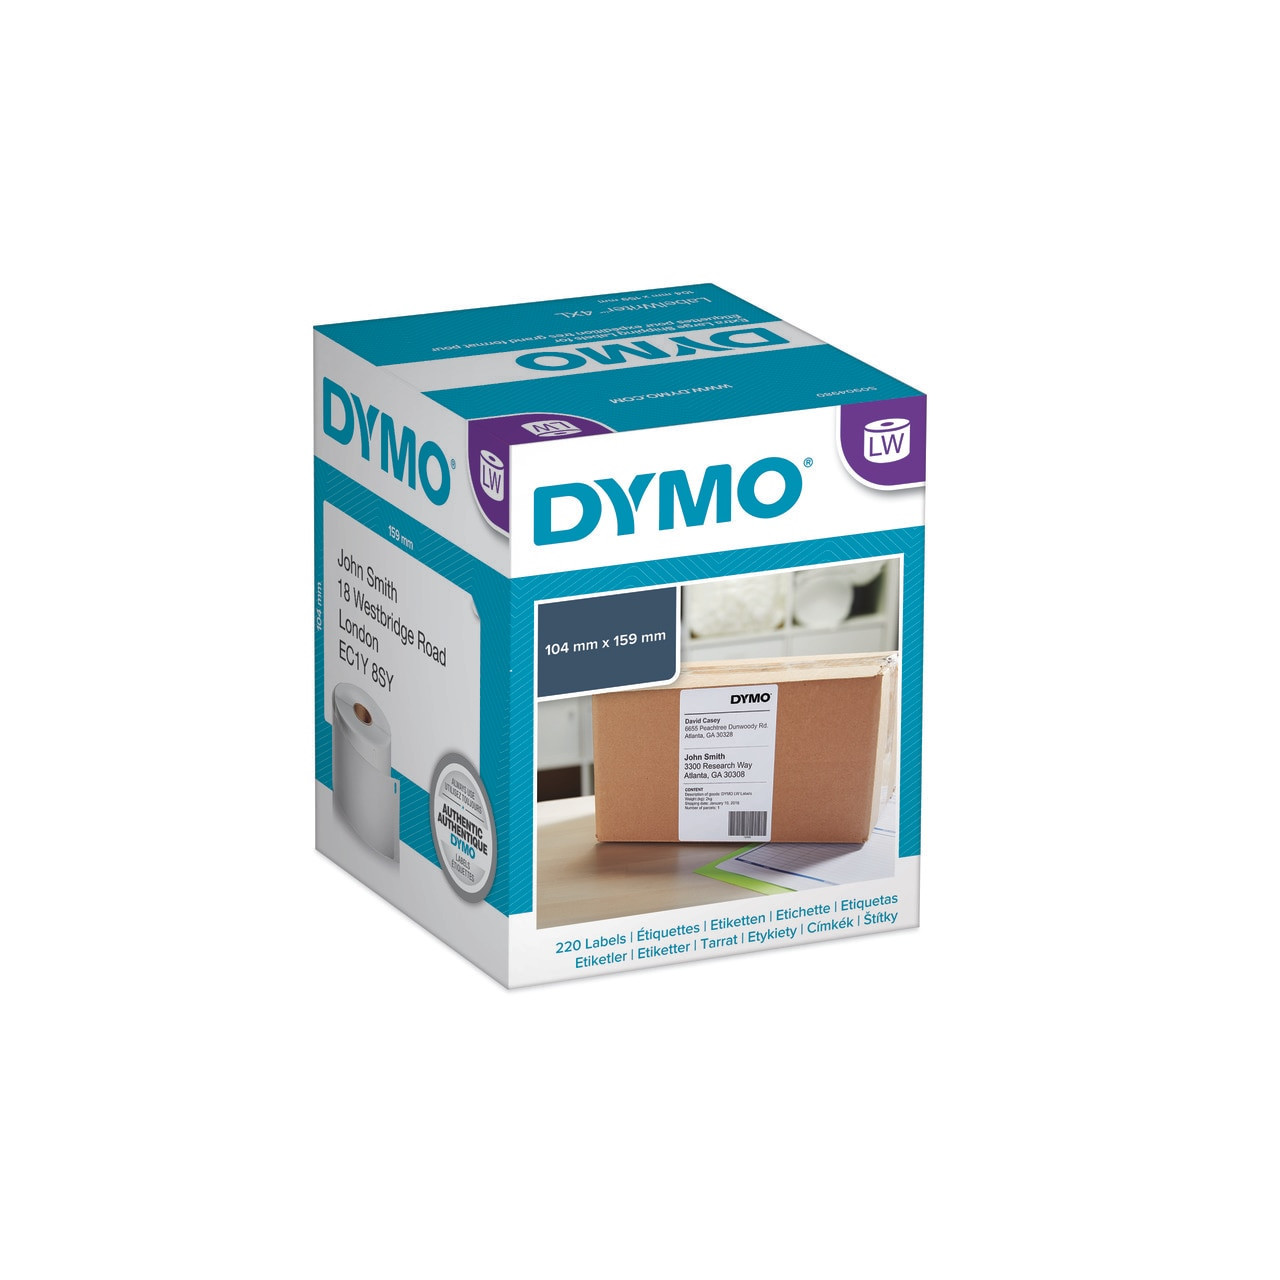 DYMO LABELWRITER LW 4XL WHITE PERMANENT SHIPPING EXTRA LARGE LABELS 104 X  159MM (4